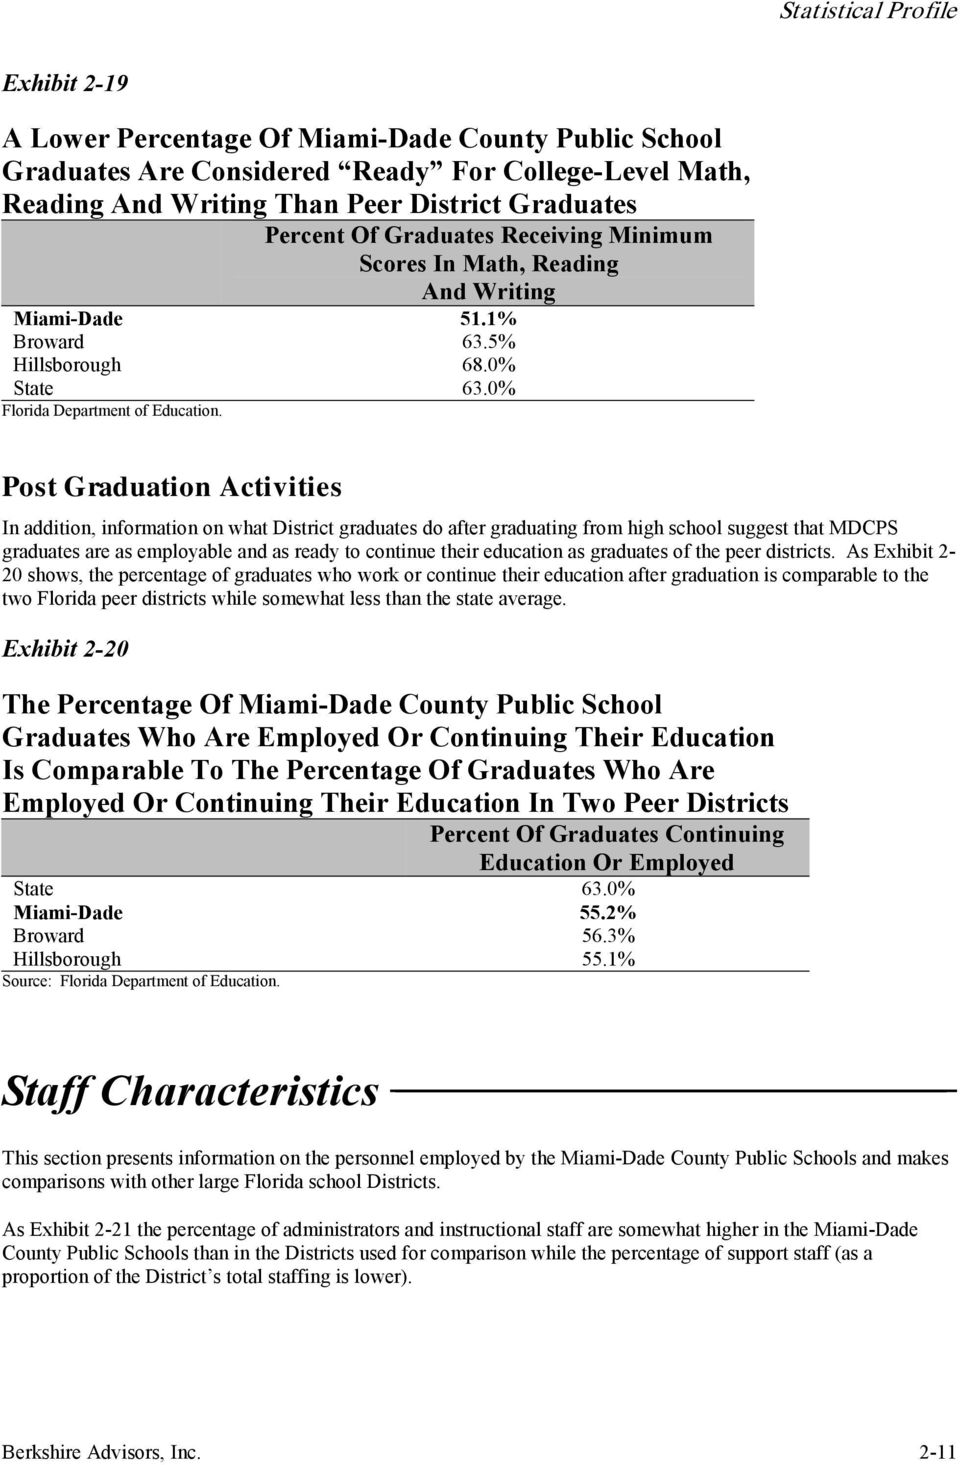 Post Graduation Activities In addition, information on what District graduates do after graduating from high school suggest that MDCPS graduates are as employable and as ready to continue their